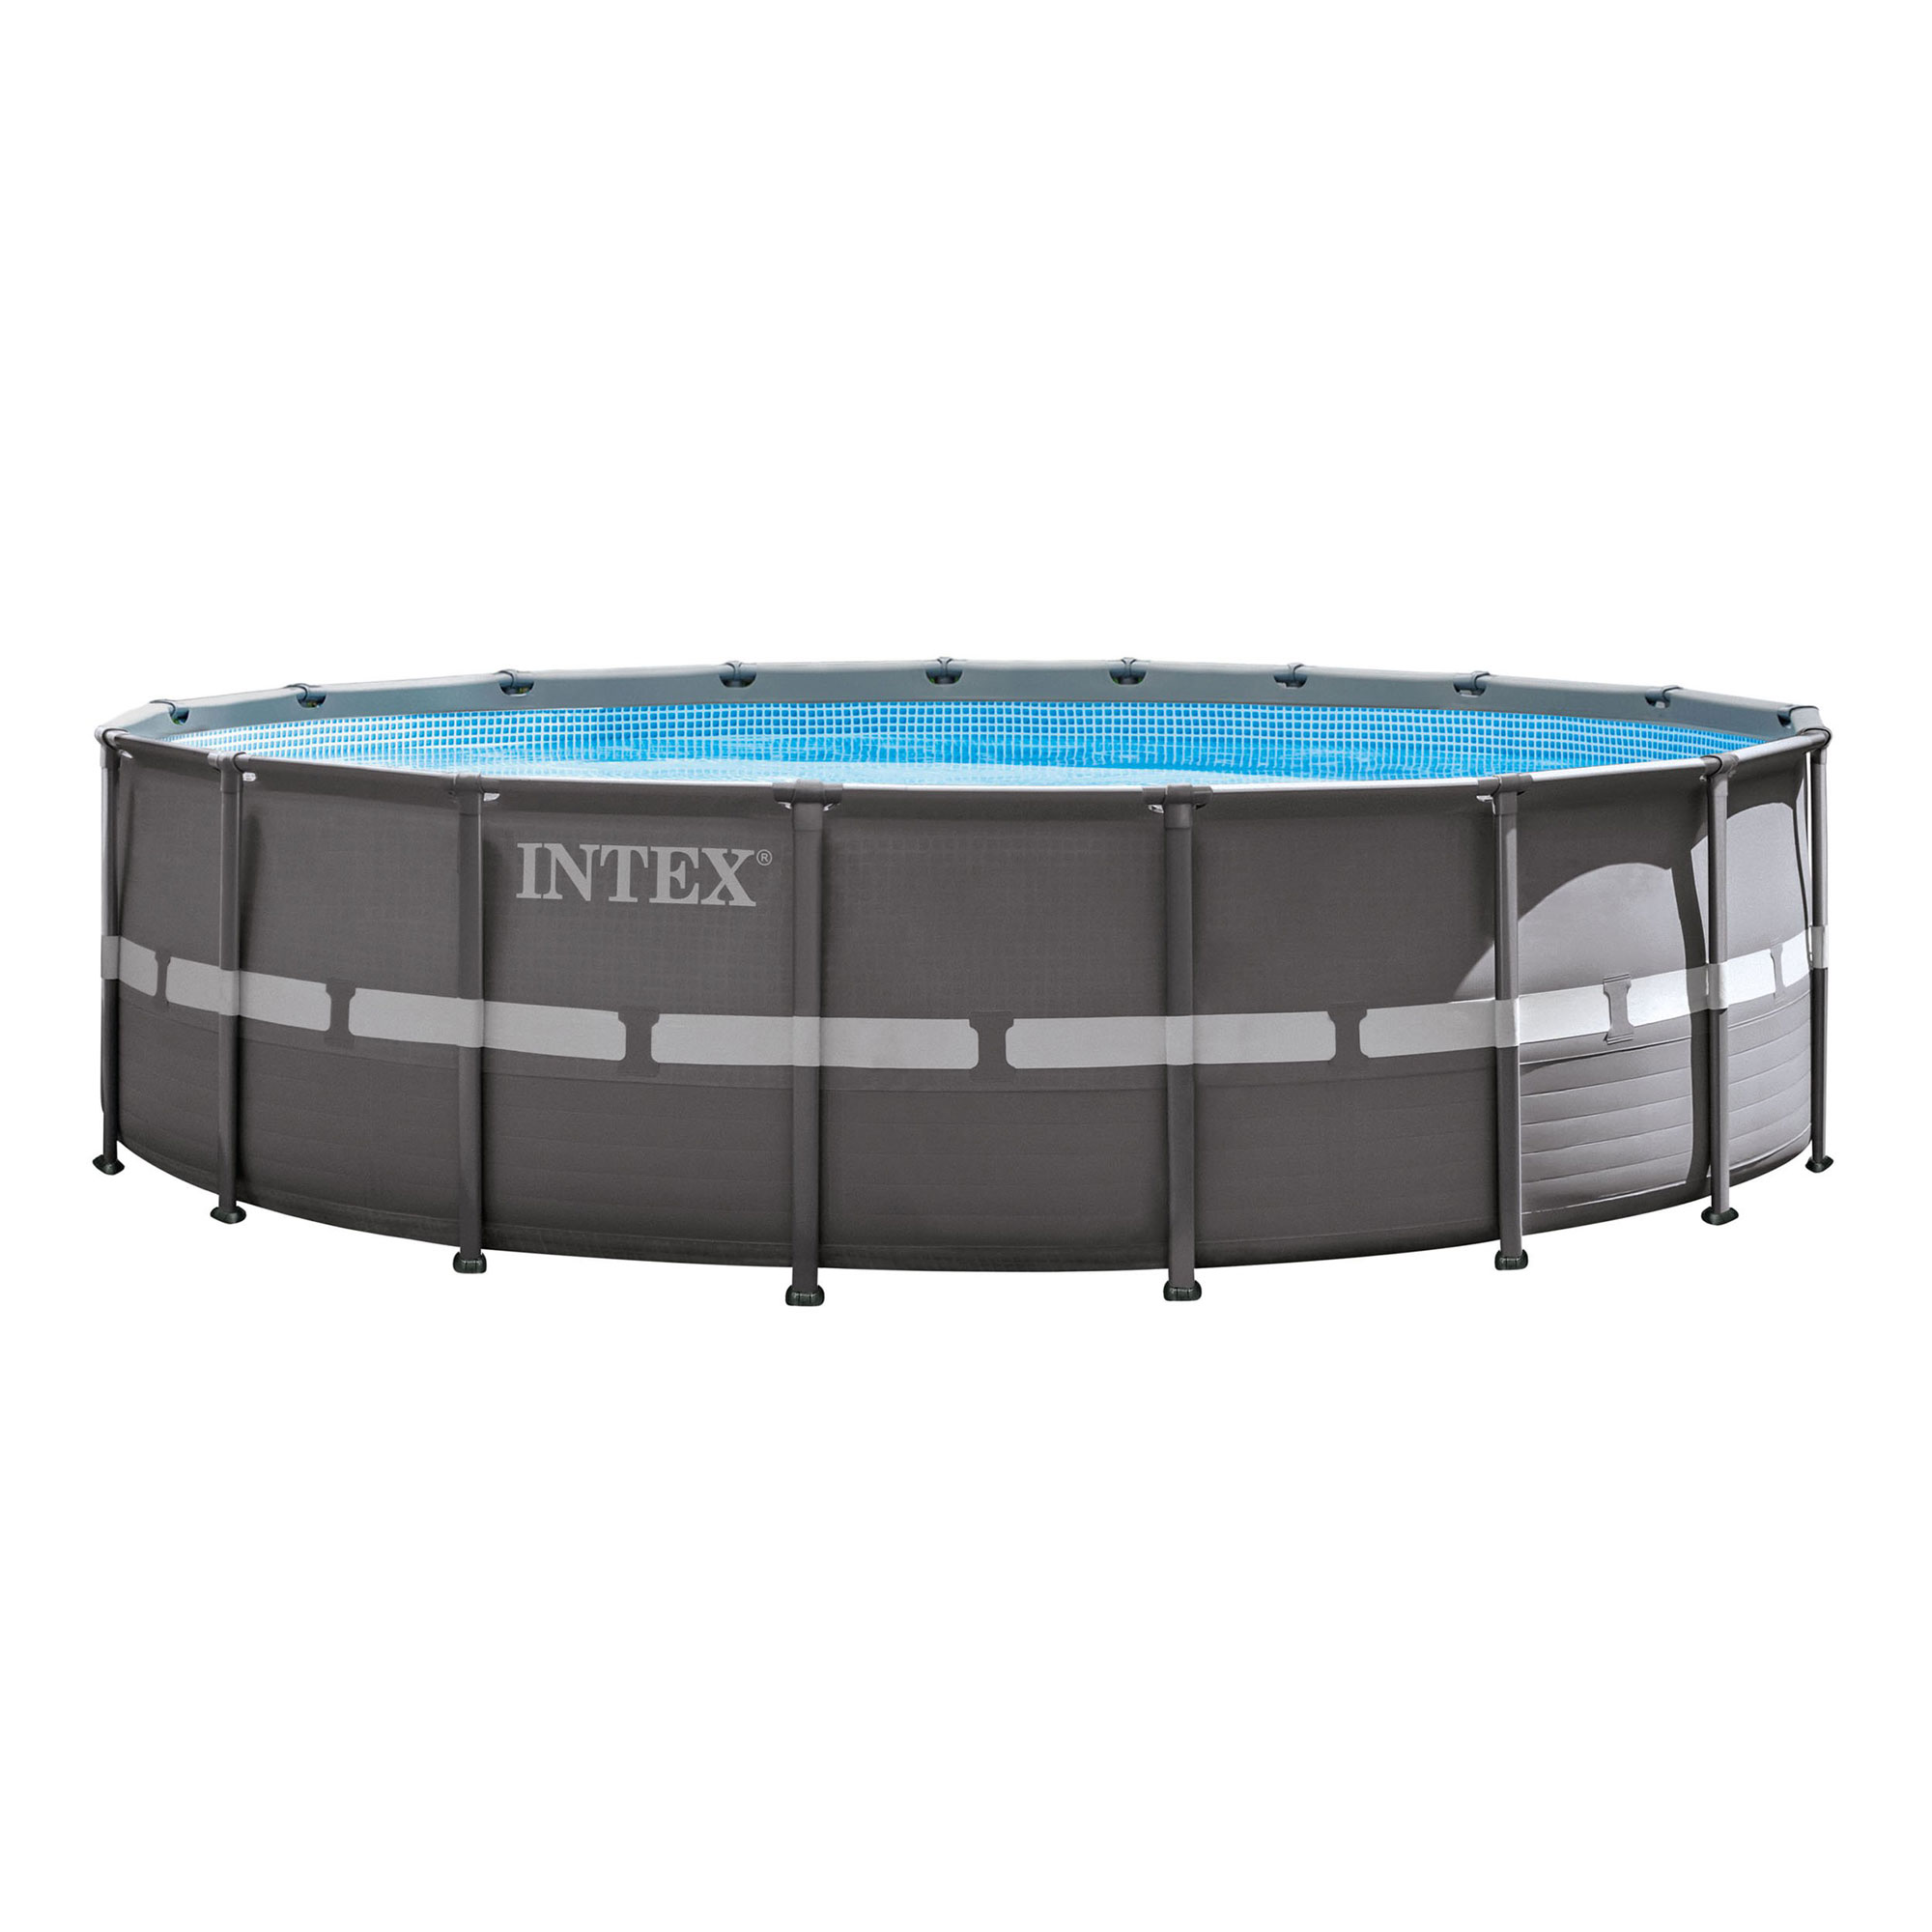 Intex 18 39 x 52 ultra frame pool set with filter pump for Billige pool sets